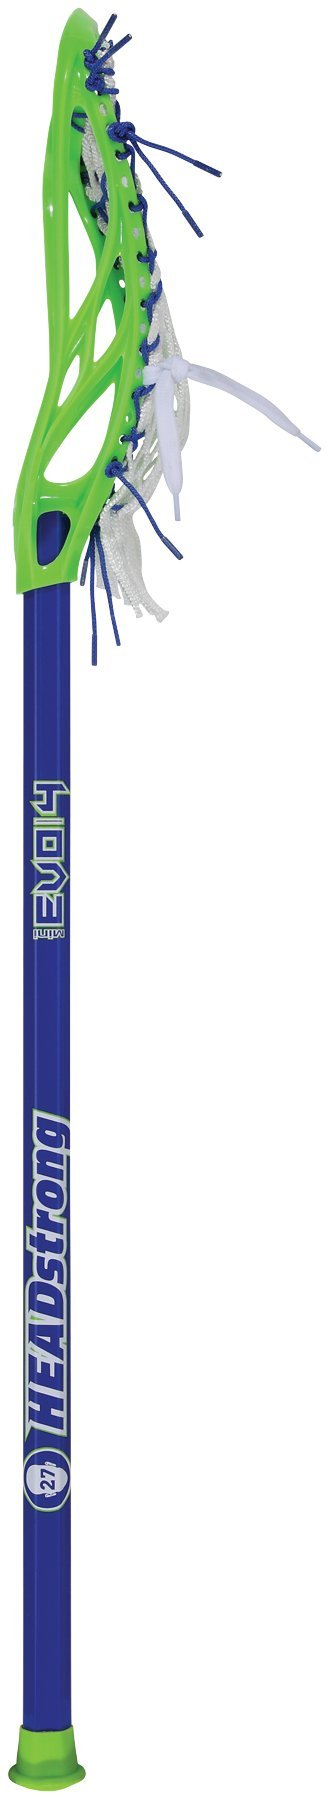 Warrior Evo 4 Headstrong Edition Lacrosse Stick, Mini by Warrior (Image #1)